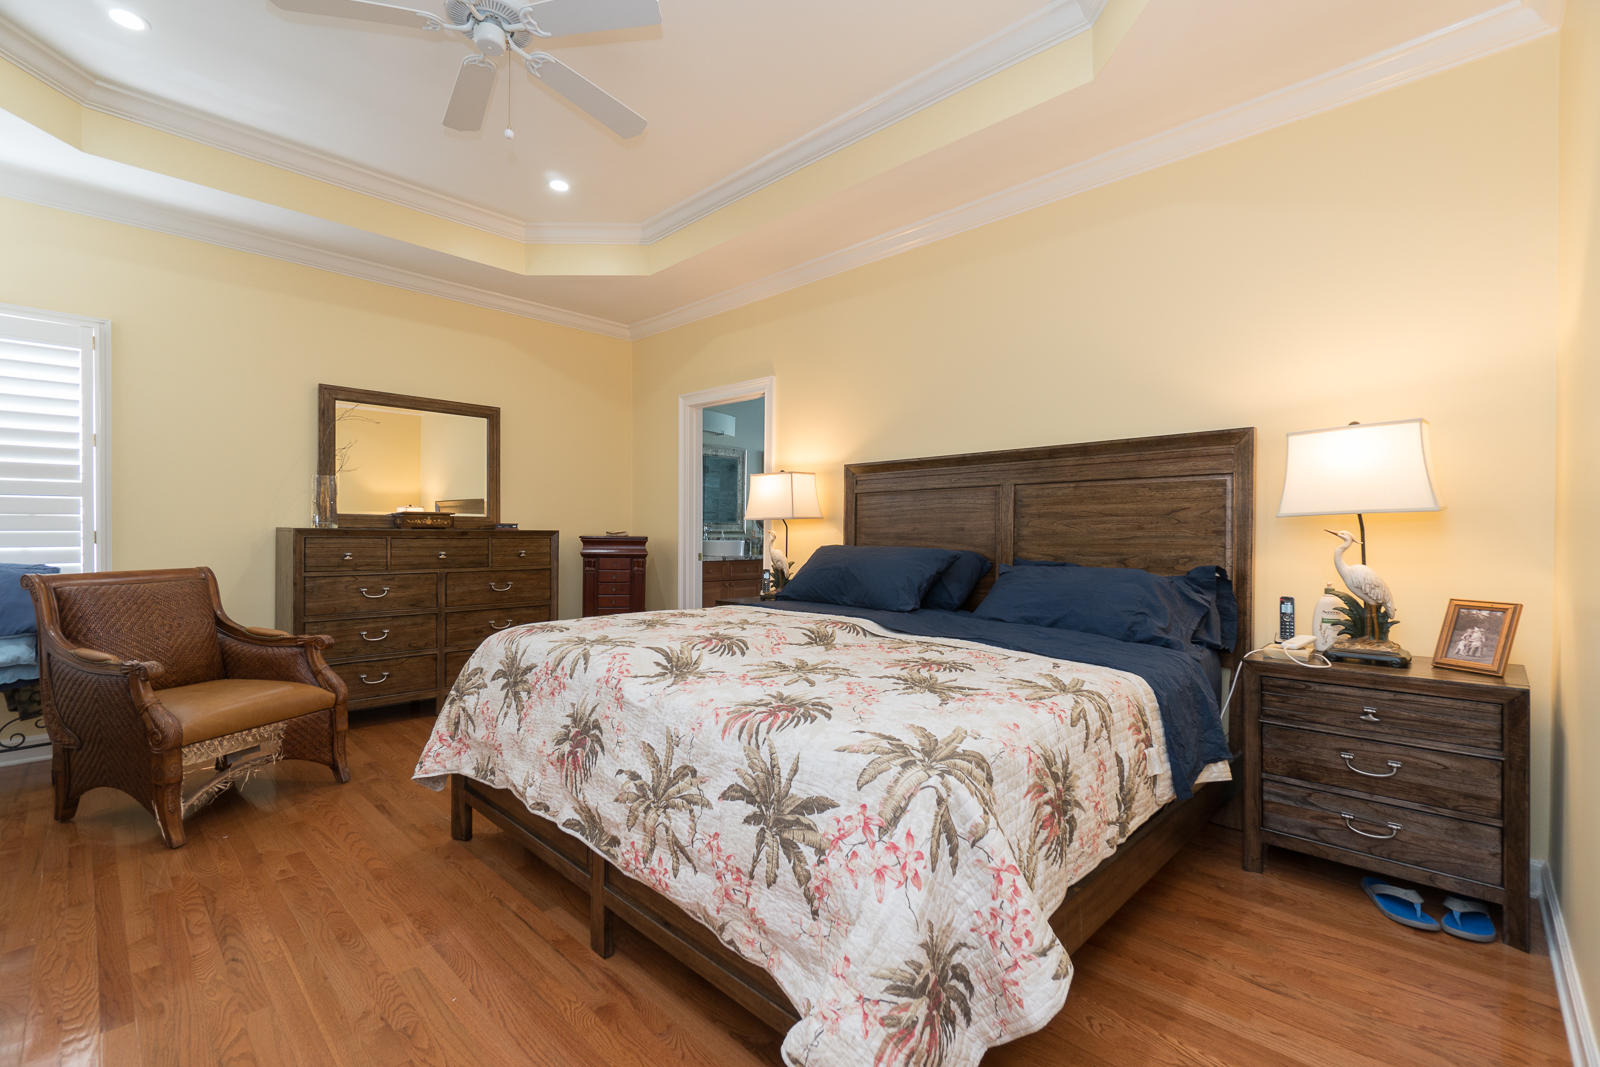 Ainsdale at Shadowmoss Plantation Homes For Sale - 233 Ainsdale, Charleston, SC - 8